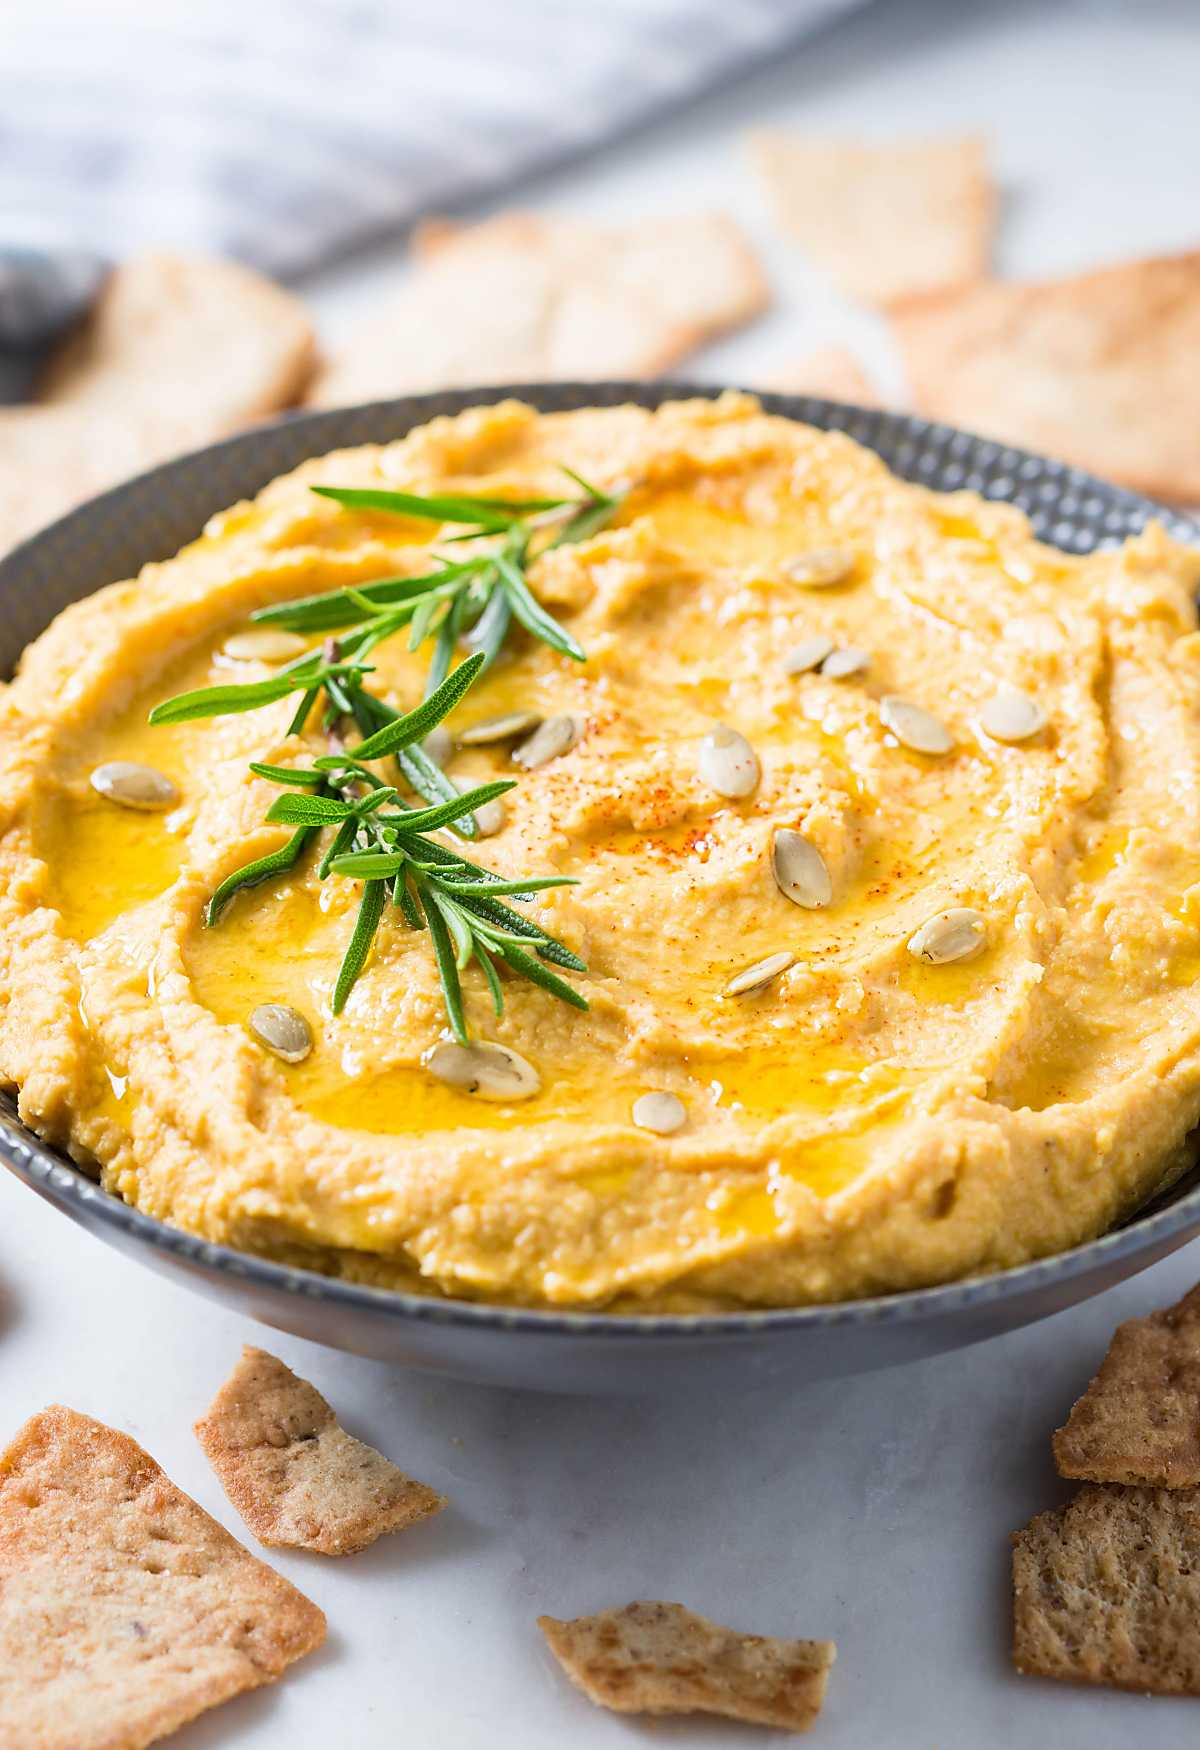 Homemade Easy Pumpkin Hummus Recipe. #pumpkin #hummus #healthyrecipes